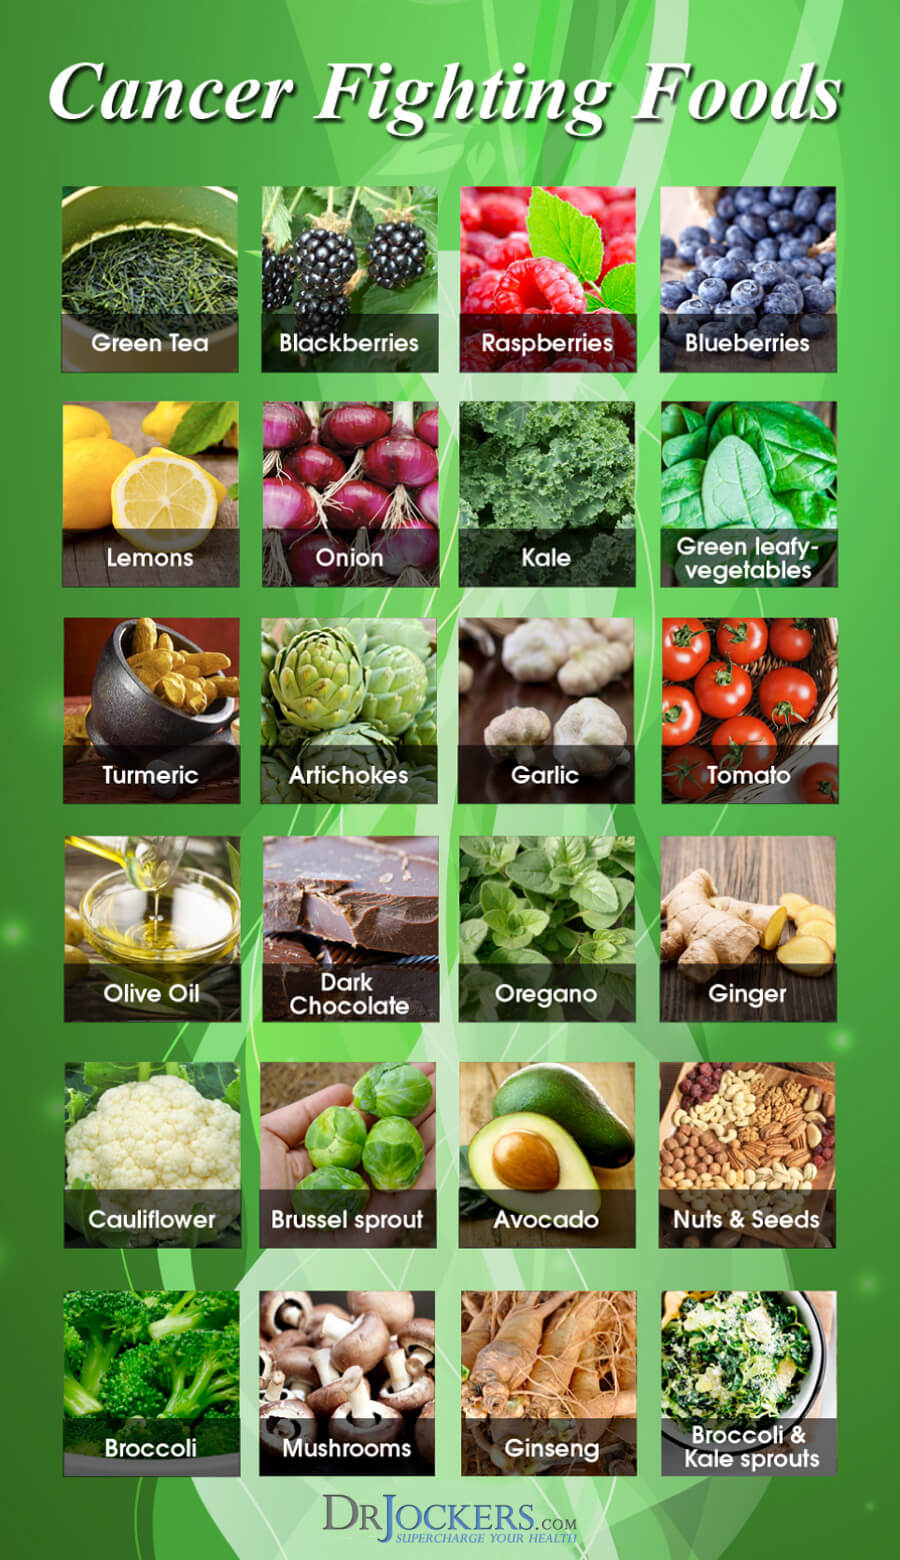 cancer fighting foods, Top 24 Cancer Fighting Foods